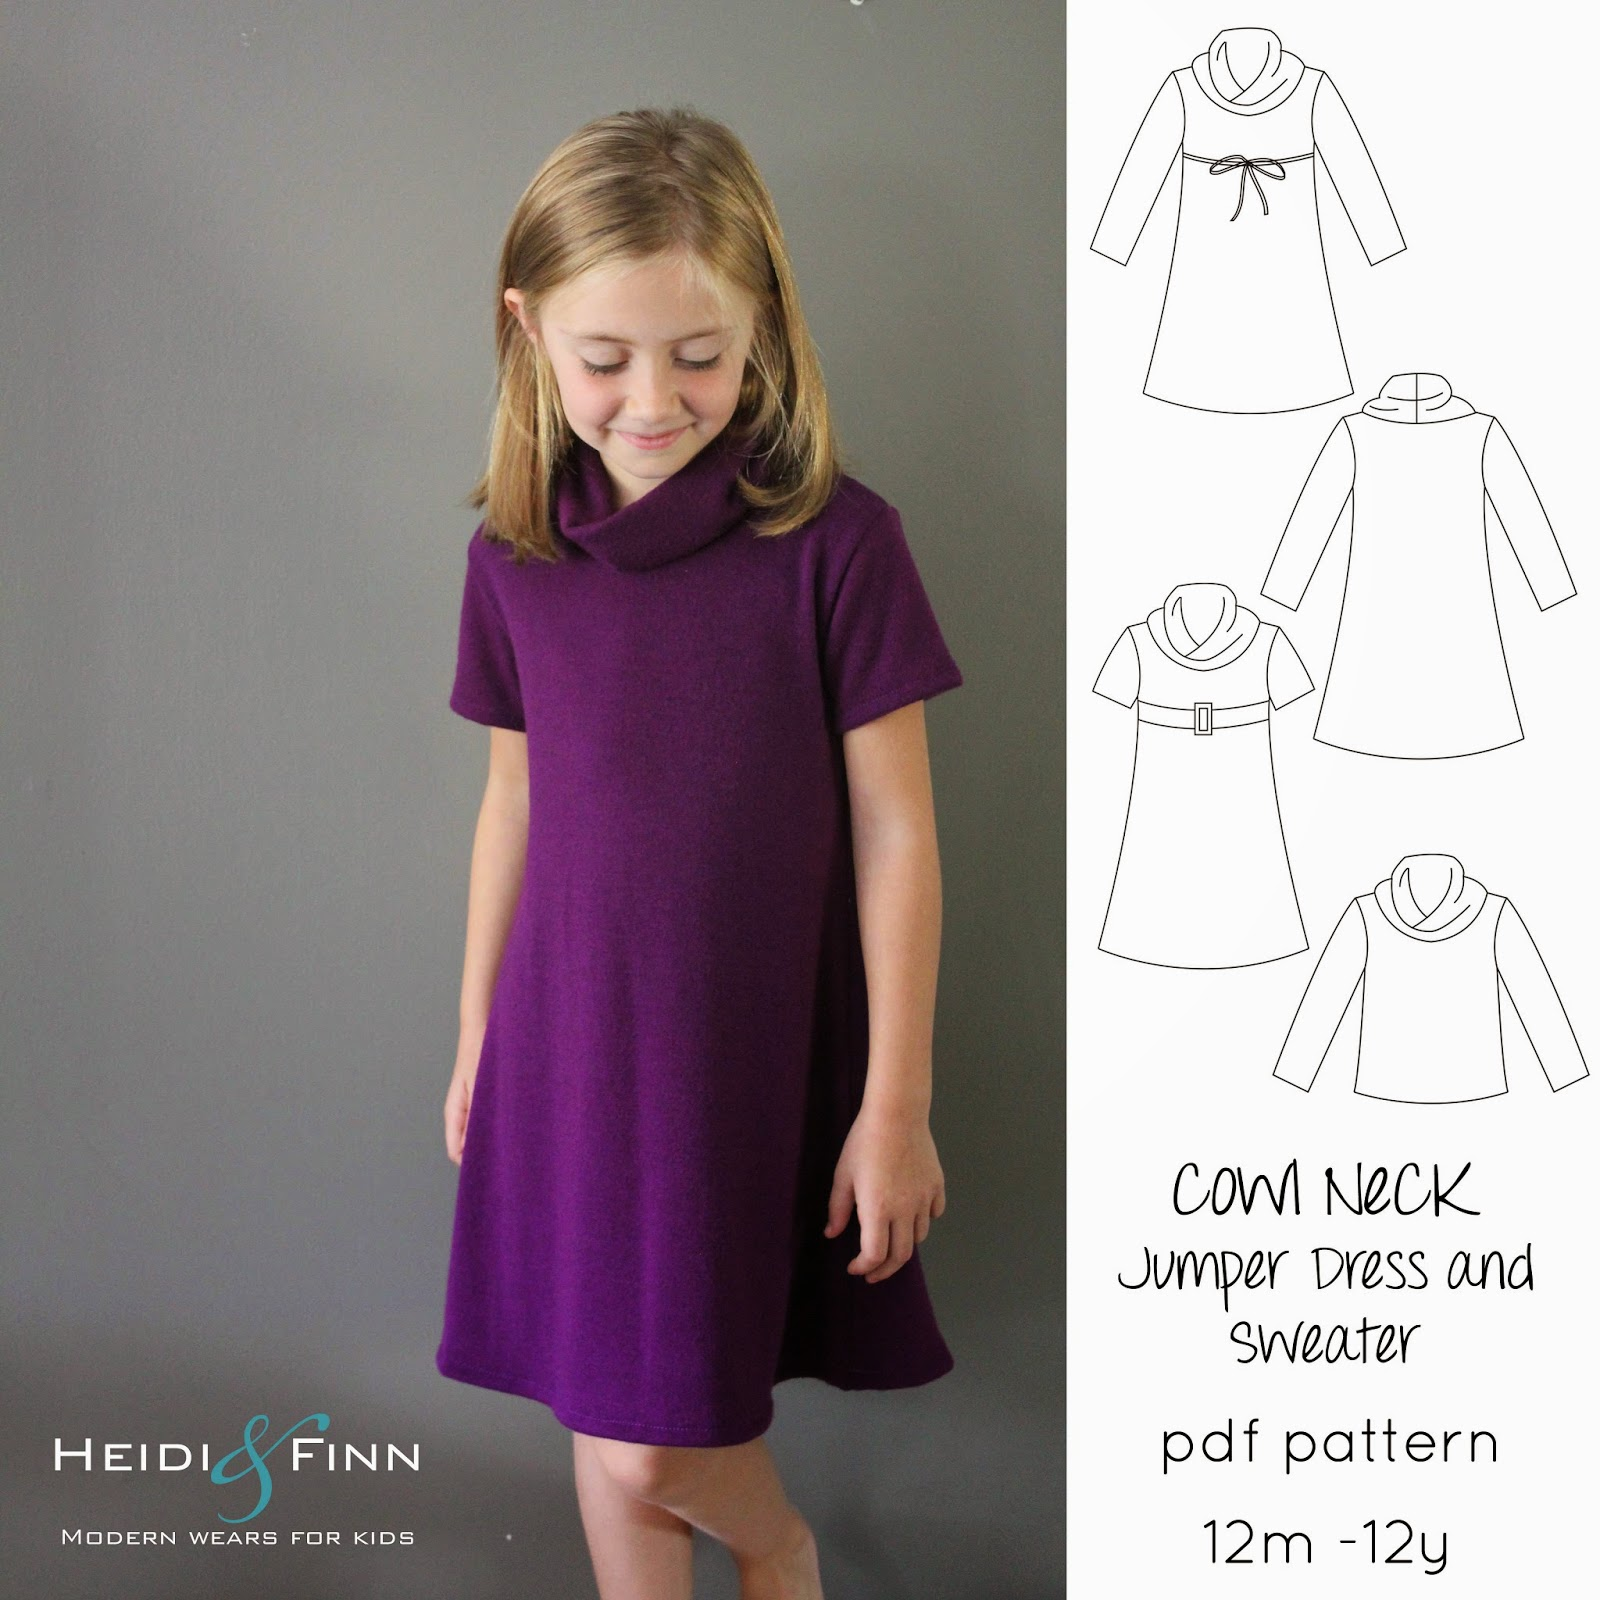 HeidiandFinn modern wears for kids: September 2014